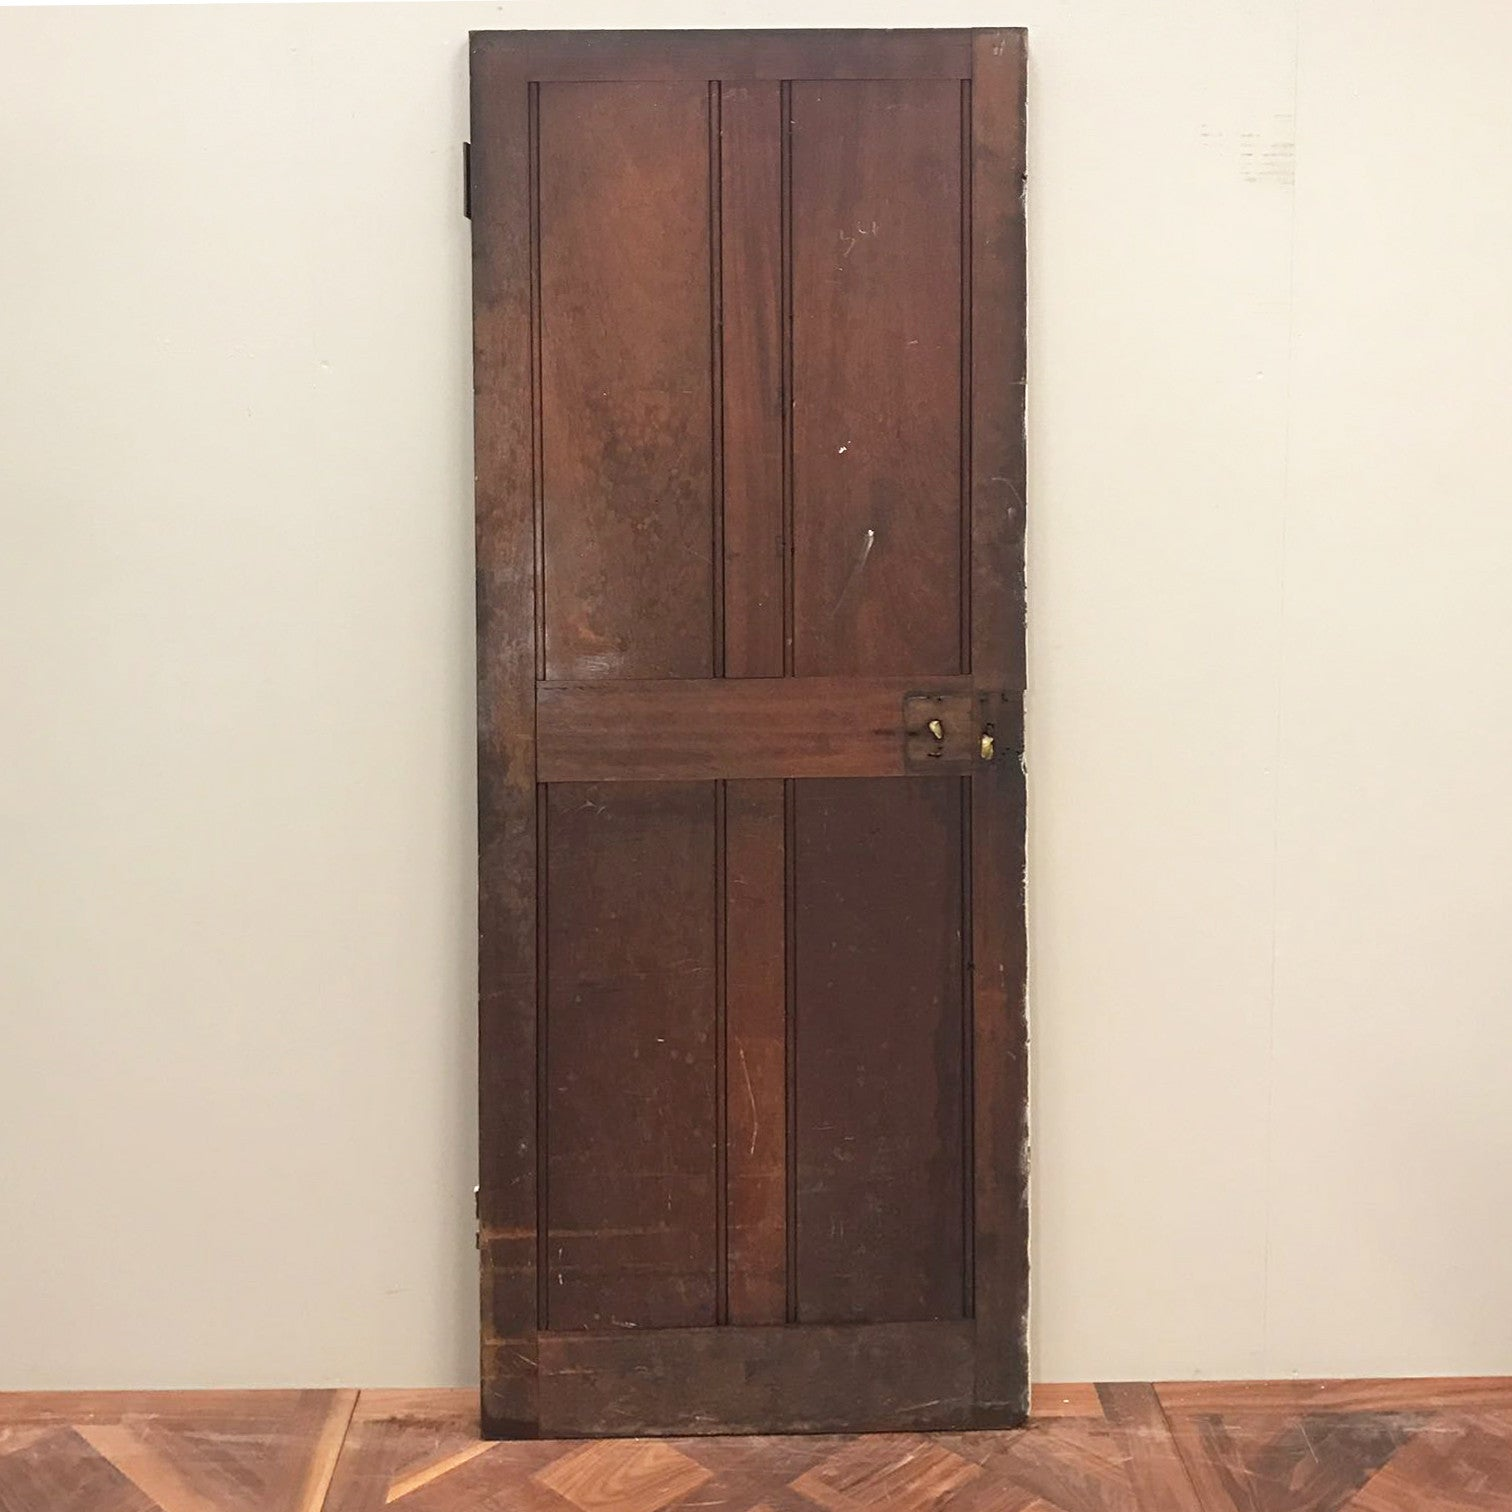 Reclaimed Teak Four Panel Door - 196cm x 68cm x 3.5cm - architectural-forum